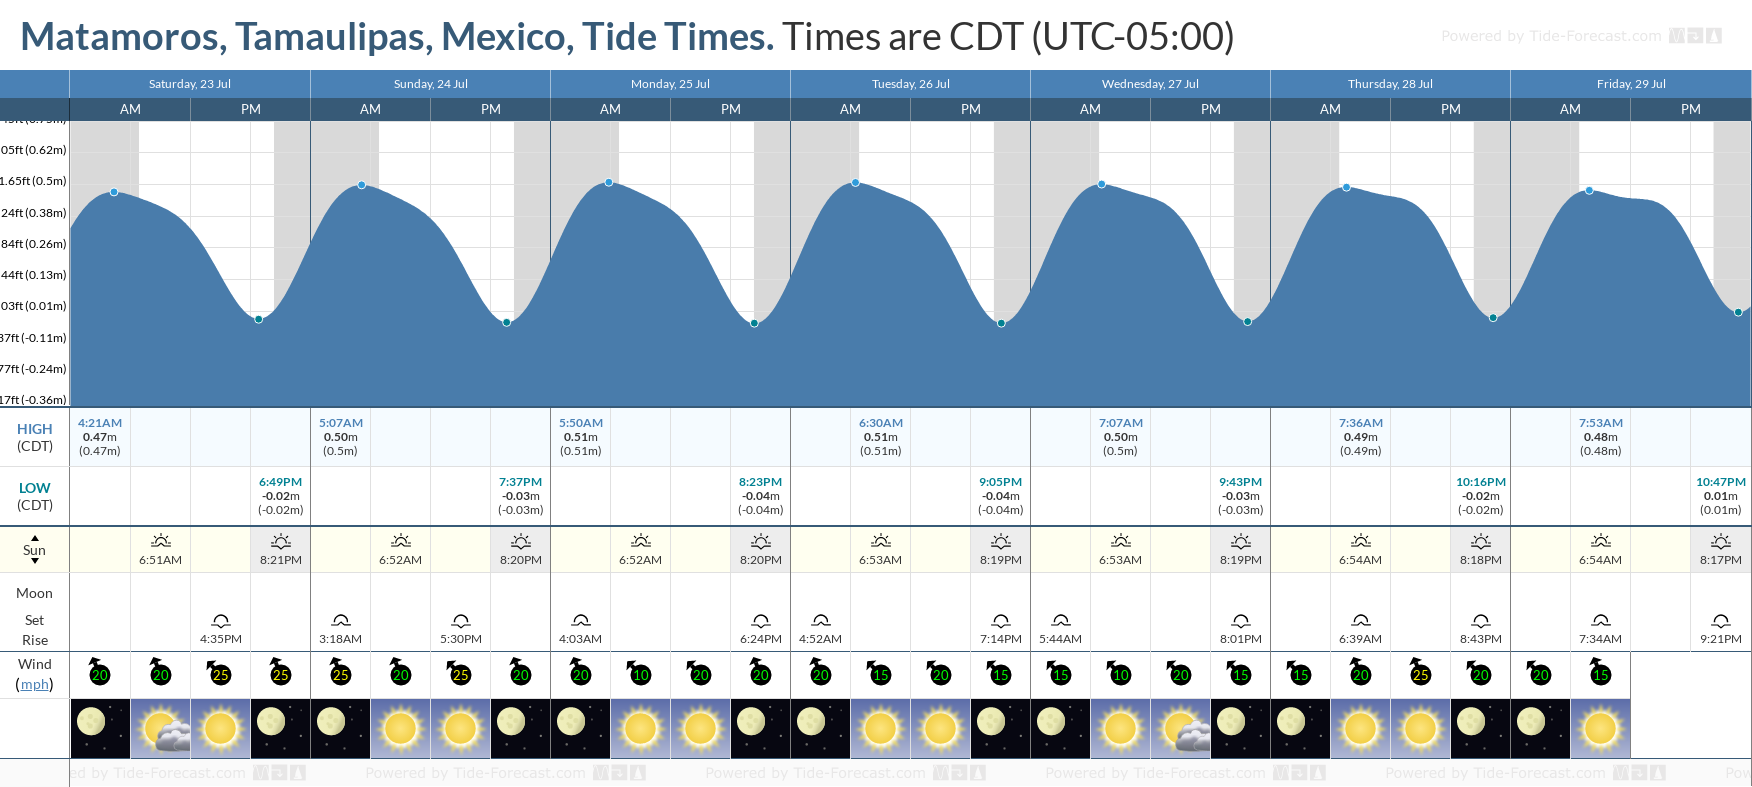 Matamoros, Tamaulipas, Mexico Tide Chart including high and low tide tide times for the next 7 days